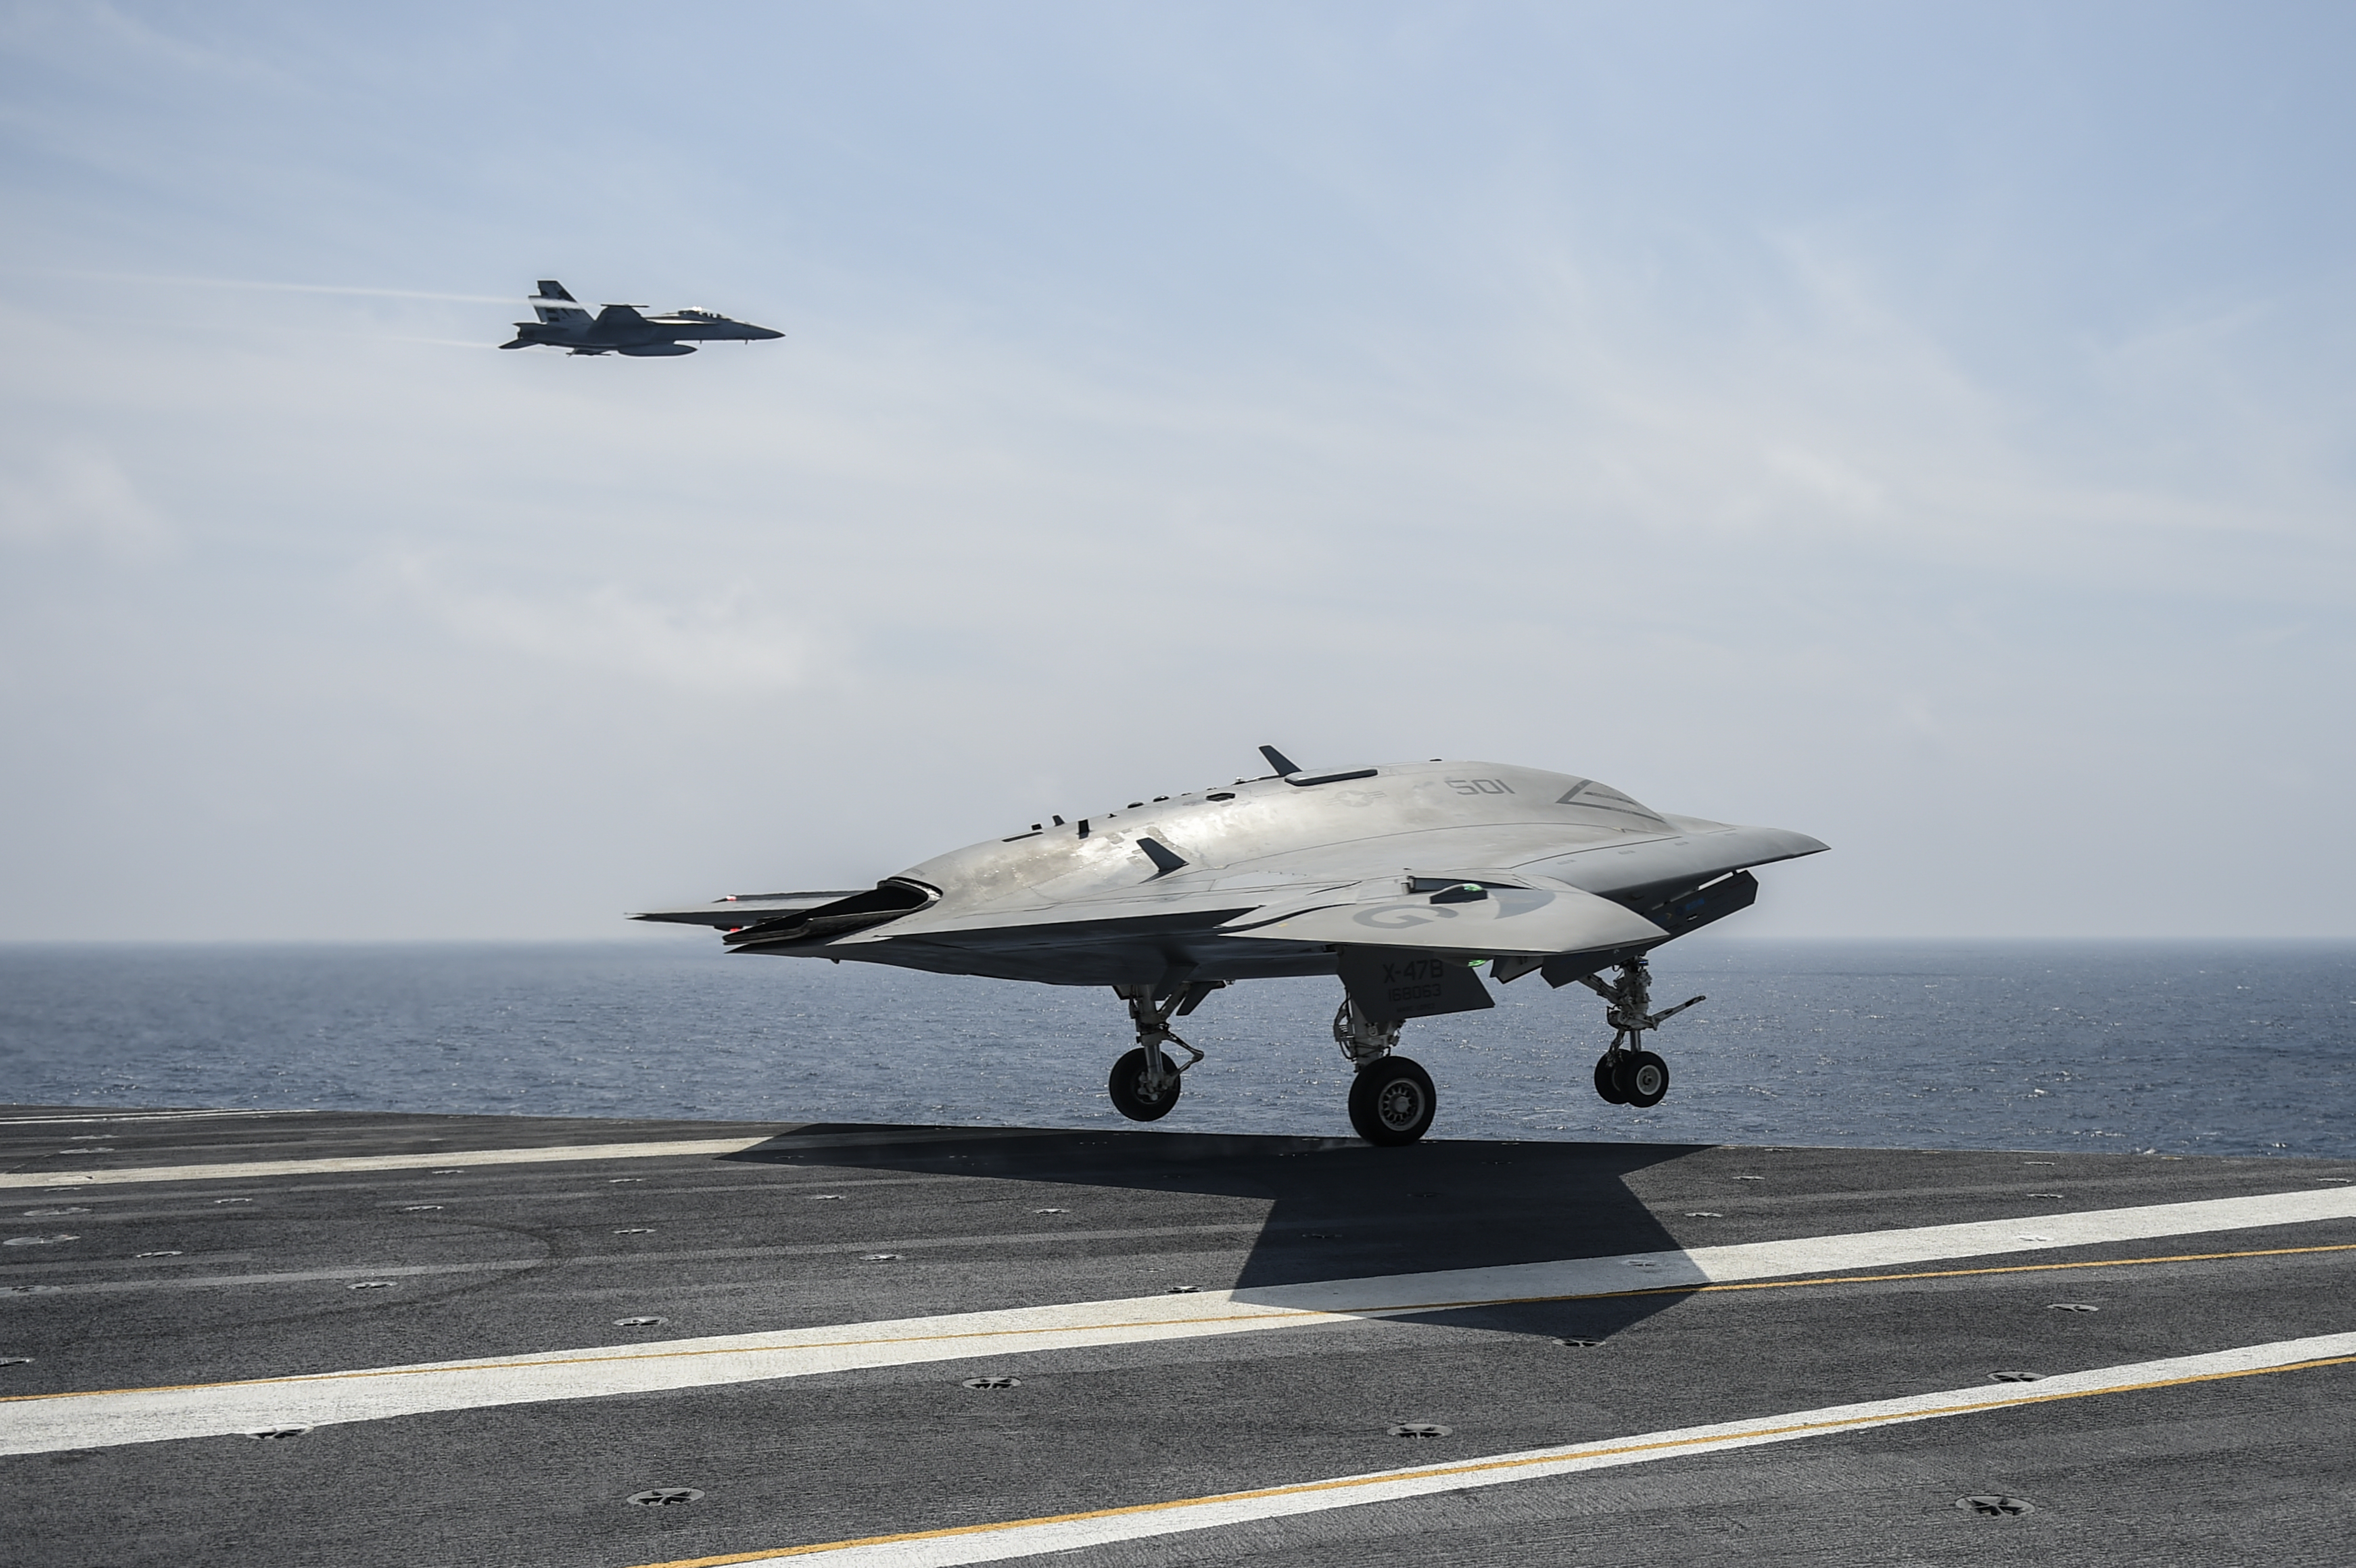 The aircraft X-47B